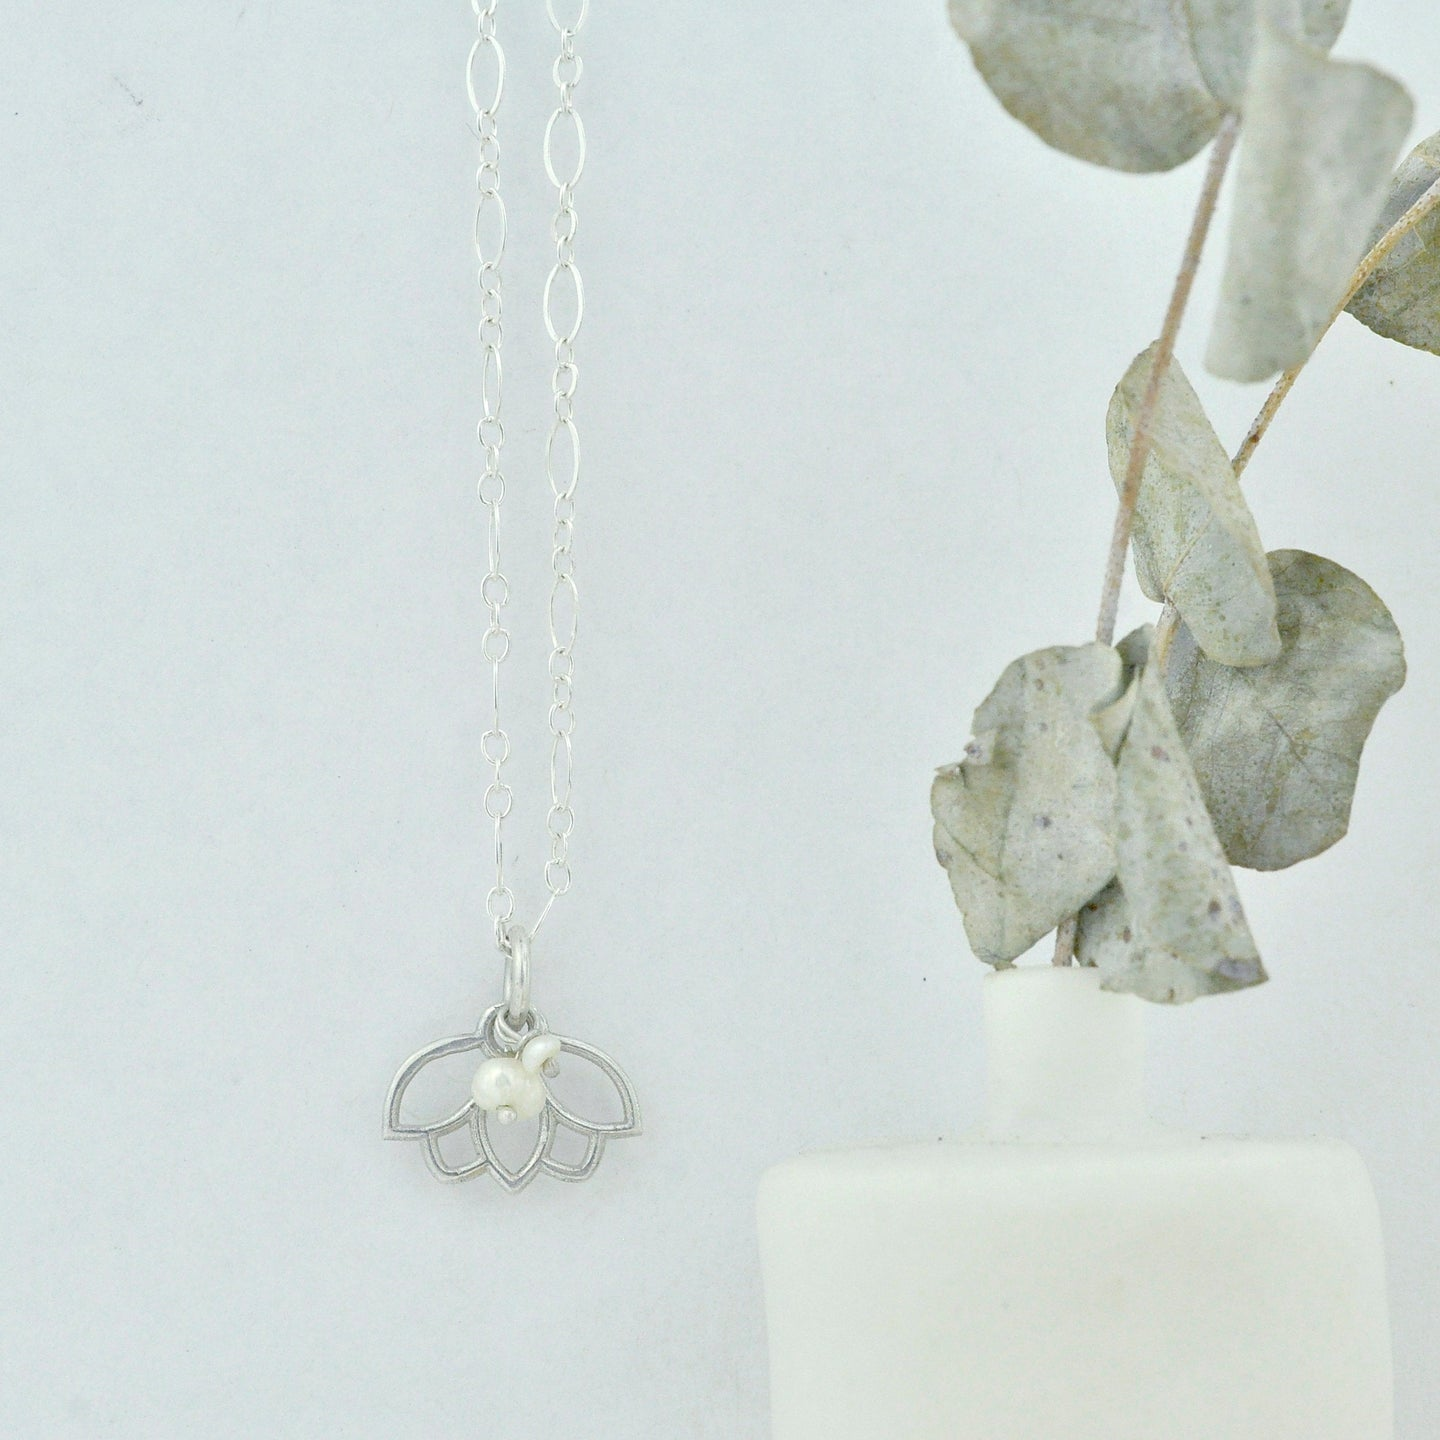 Pearl delicate sterling silver tiny charm necklace with Lotus petal, June birthstone.